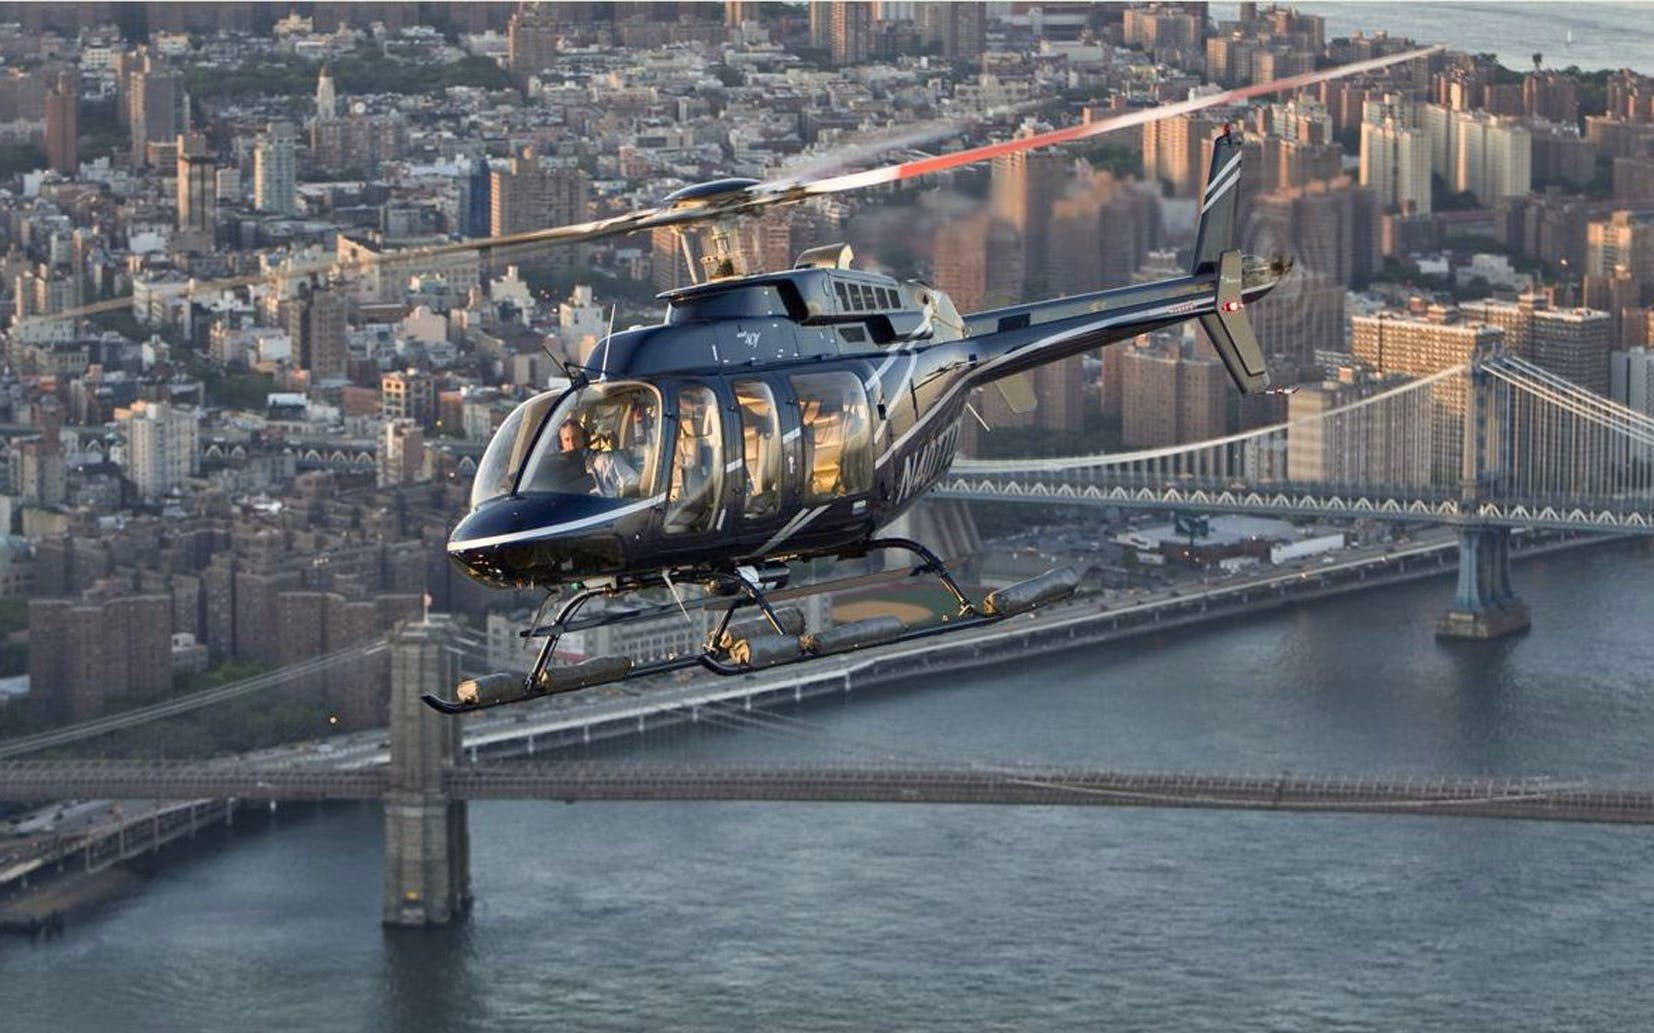 NYC Helicopter Tour - 15 minutes